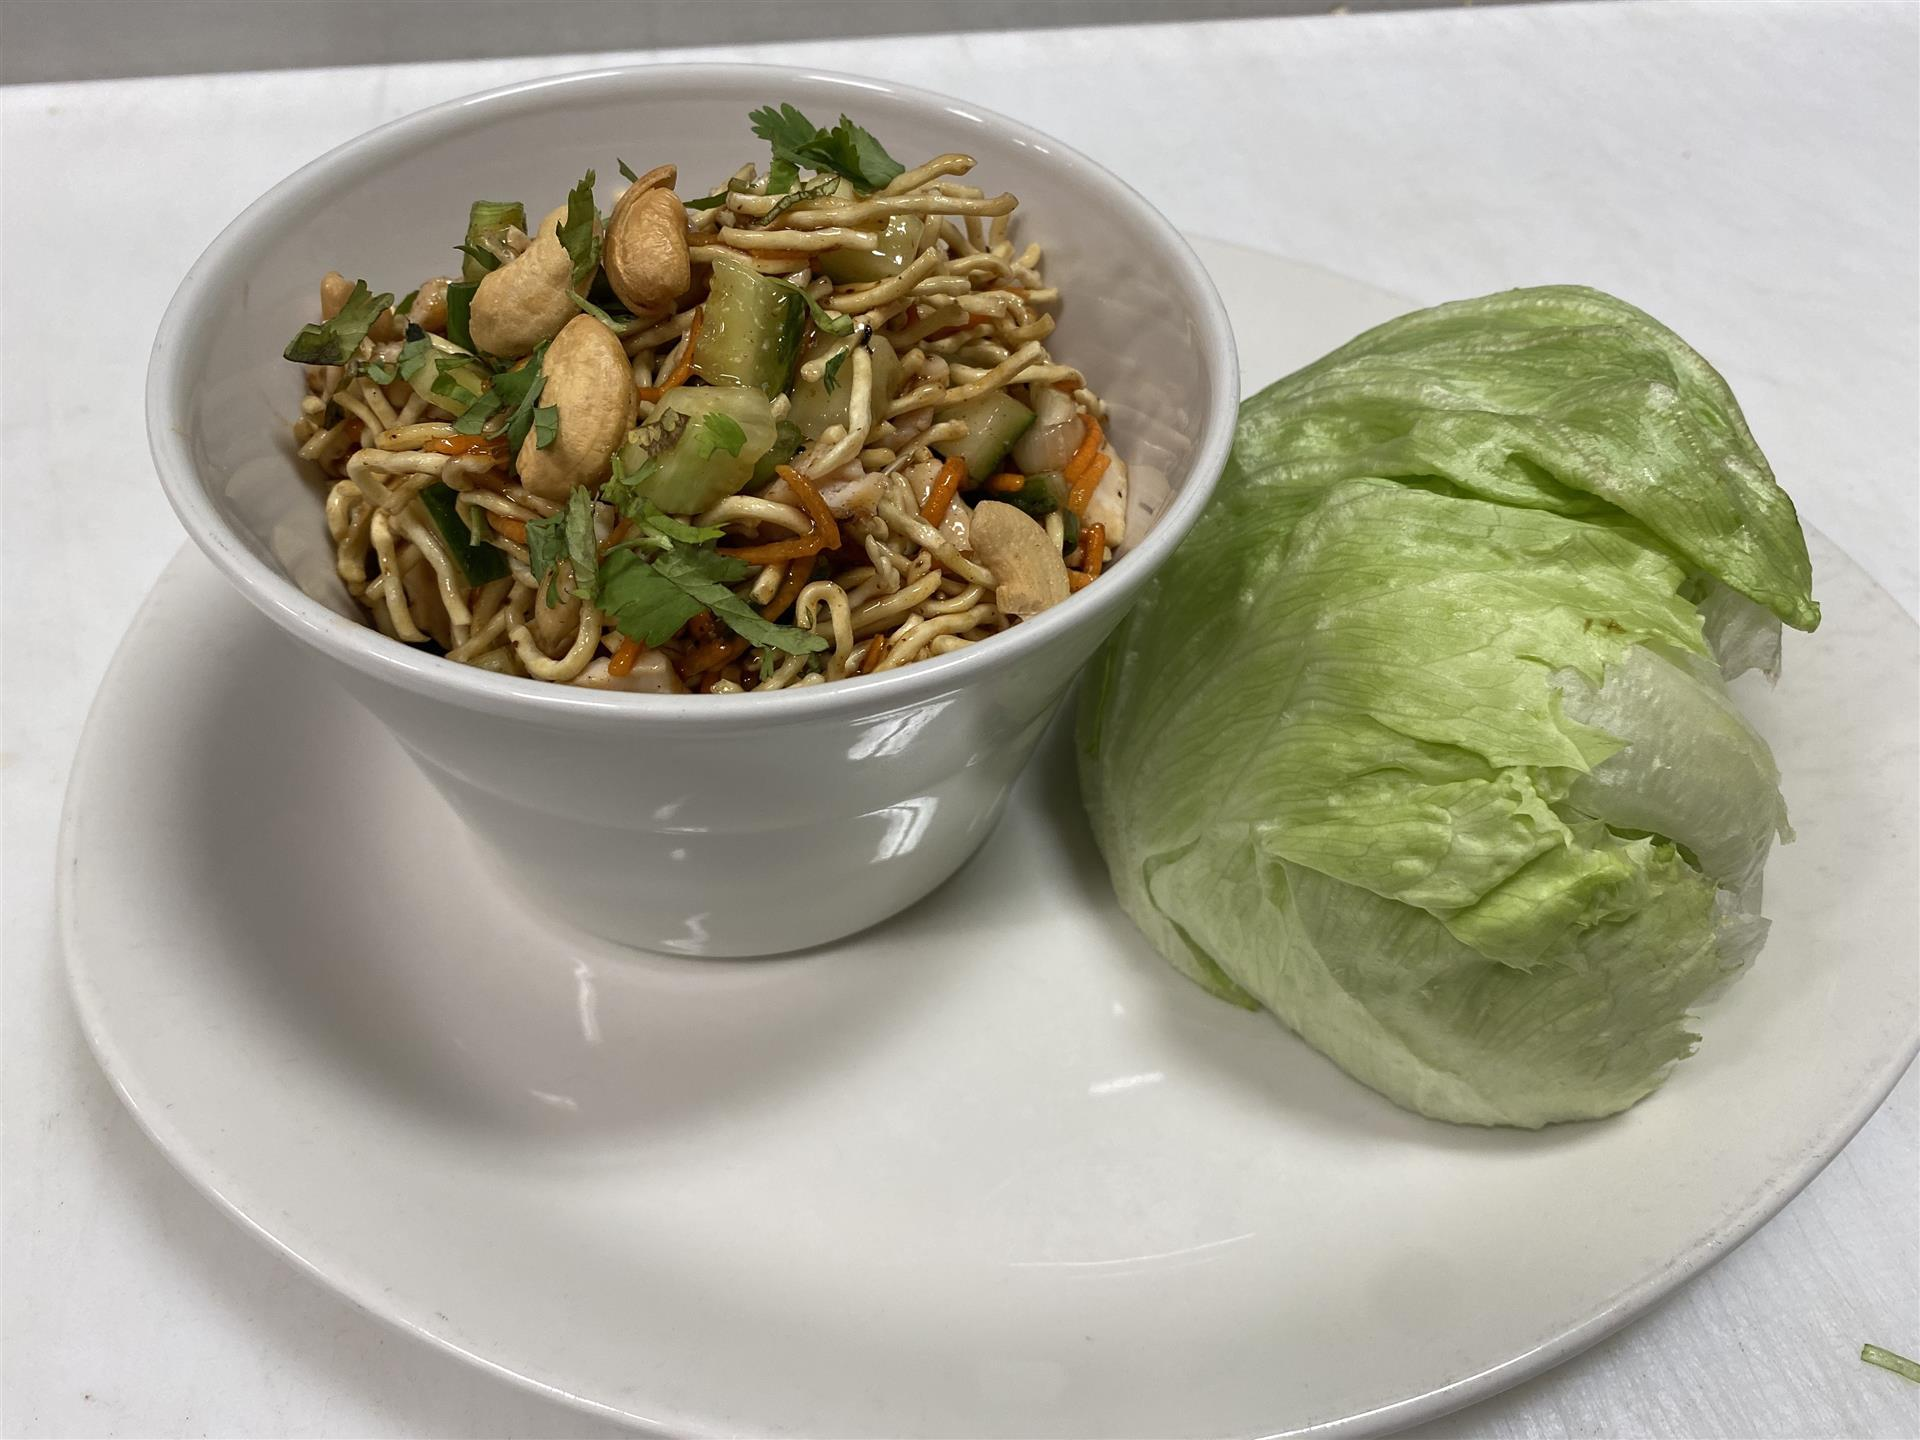 thai lettuce wraps appetizer: half head of iceburg lettuce with cup of lettuce wrap fillings